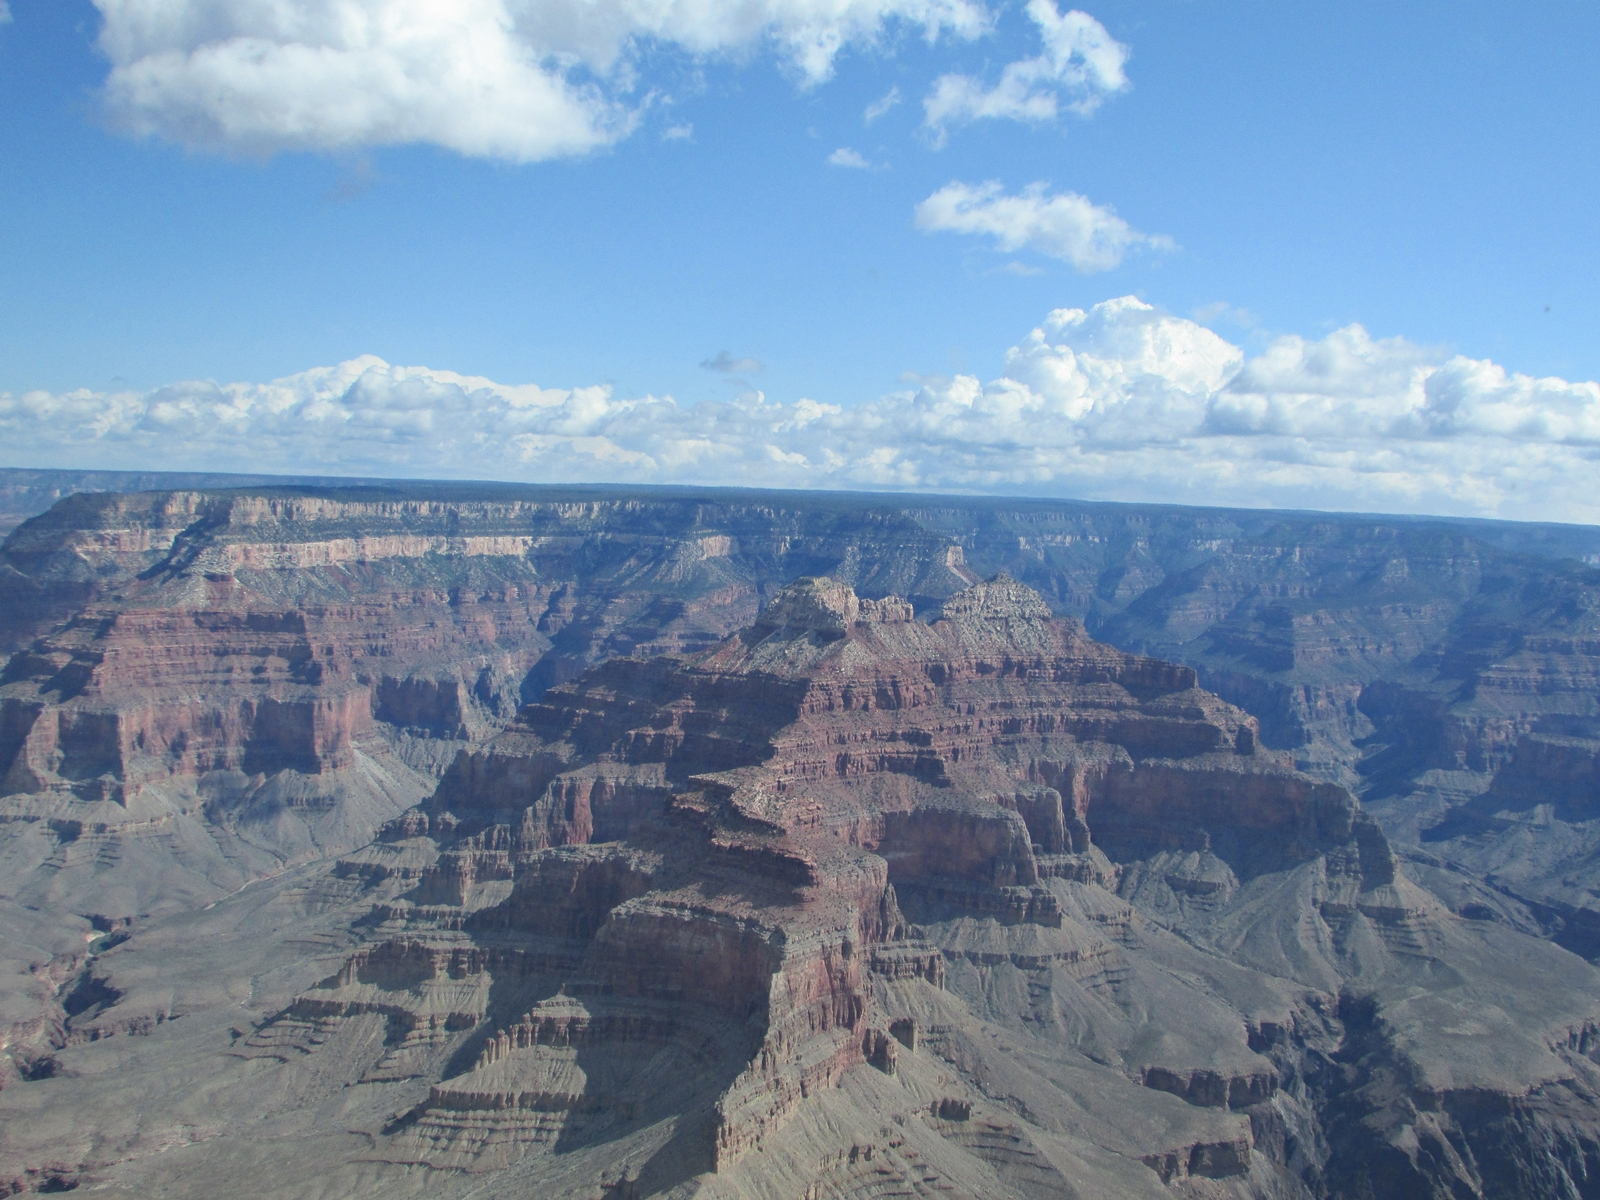 Grand Canyon Hubschrauber Flug - Westküste Rundreise - Roadtrip - USA Amerika - Fashionladyloves by Tamara Wagner - Travelblog